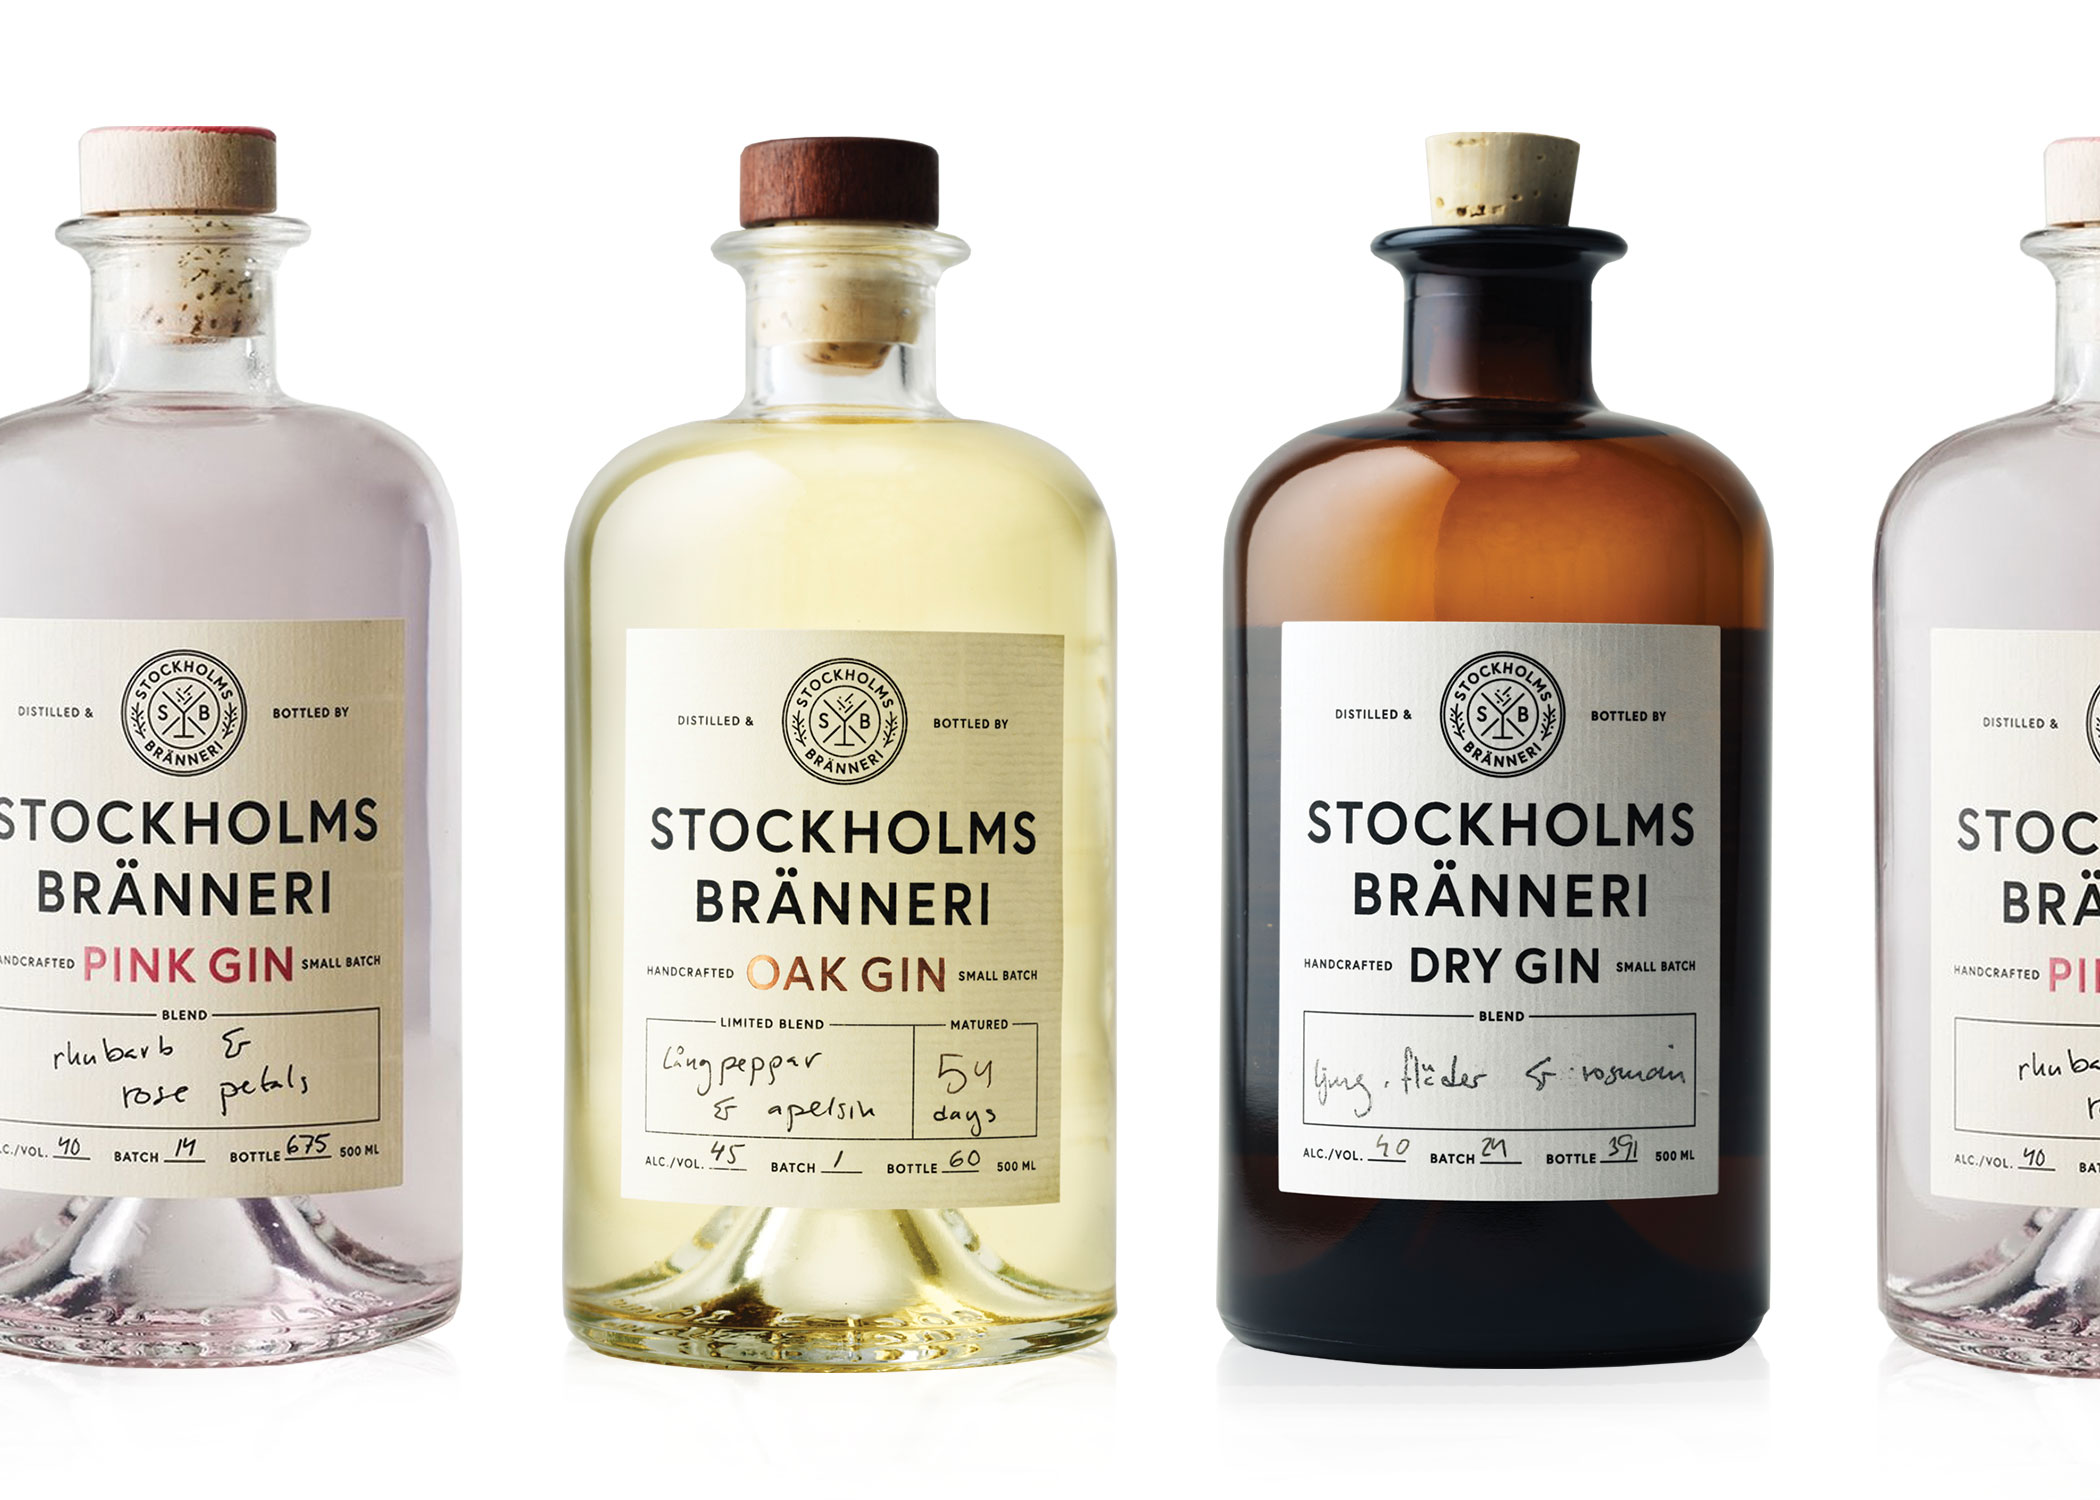 Stockholms Bränneri - The first hand-crafted organic premium gin from Stockholm, Sweden. Stockholms Bränneri is situated in an old Jaguar workshop on the island of Södermalm in Stockholm, Sweden. Stockholms Bränneri Pink Gin, Oak Gin and Dry Gin available.